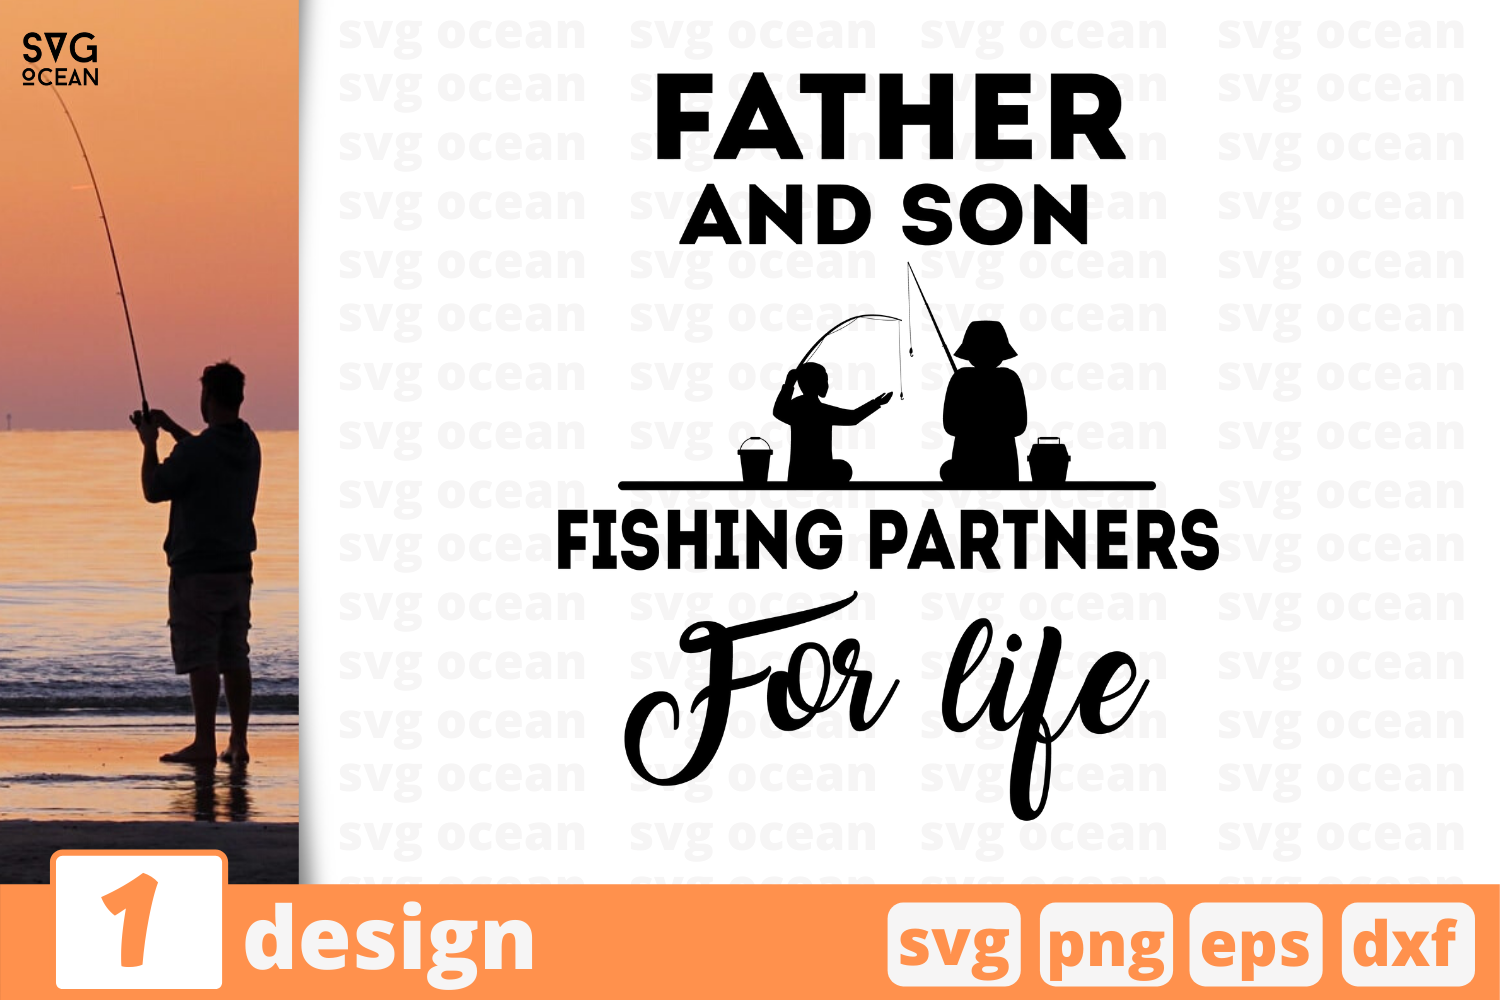 Father Son Fishing Partners Graphic By Svgocean Creative Fabrica